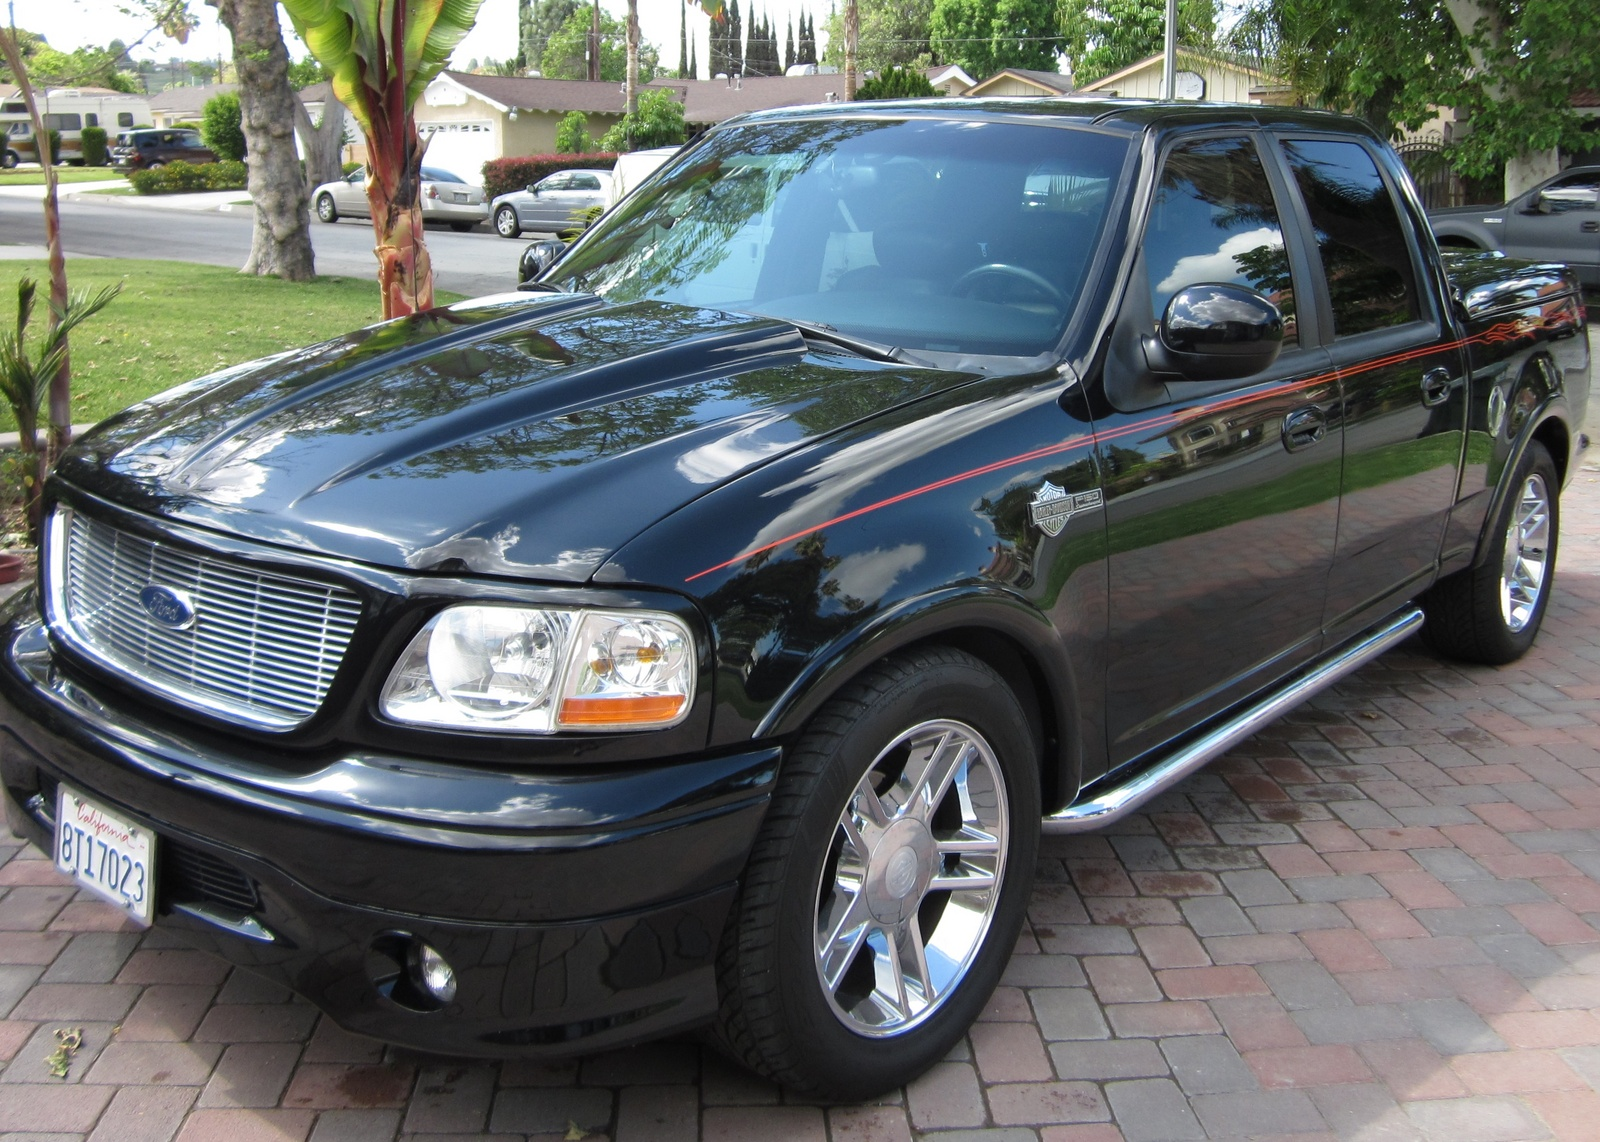 Picture of 2002 ford f 150 harley davidson supercharged crew cab sb